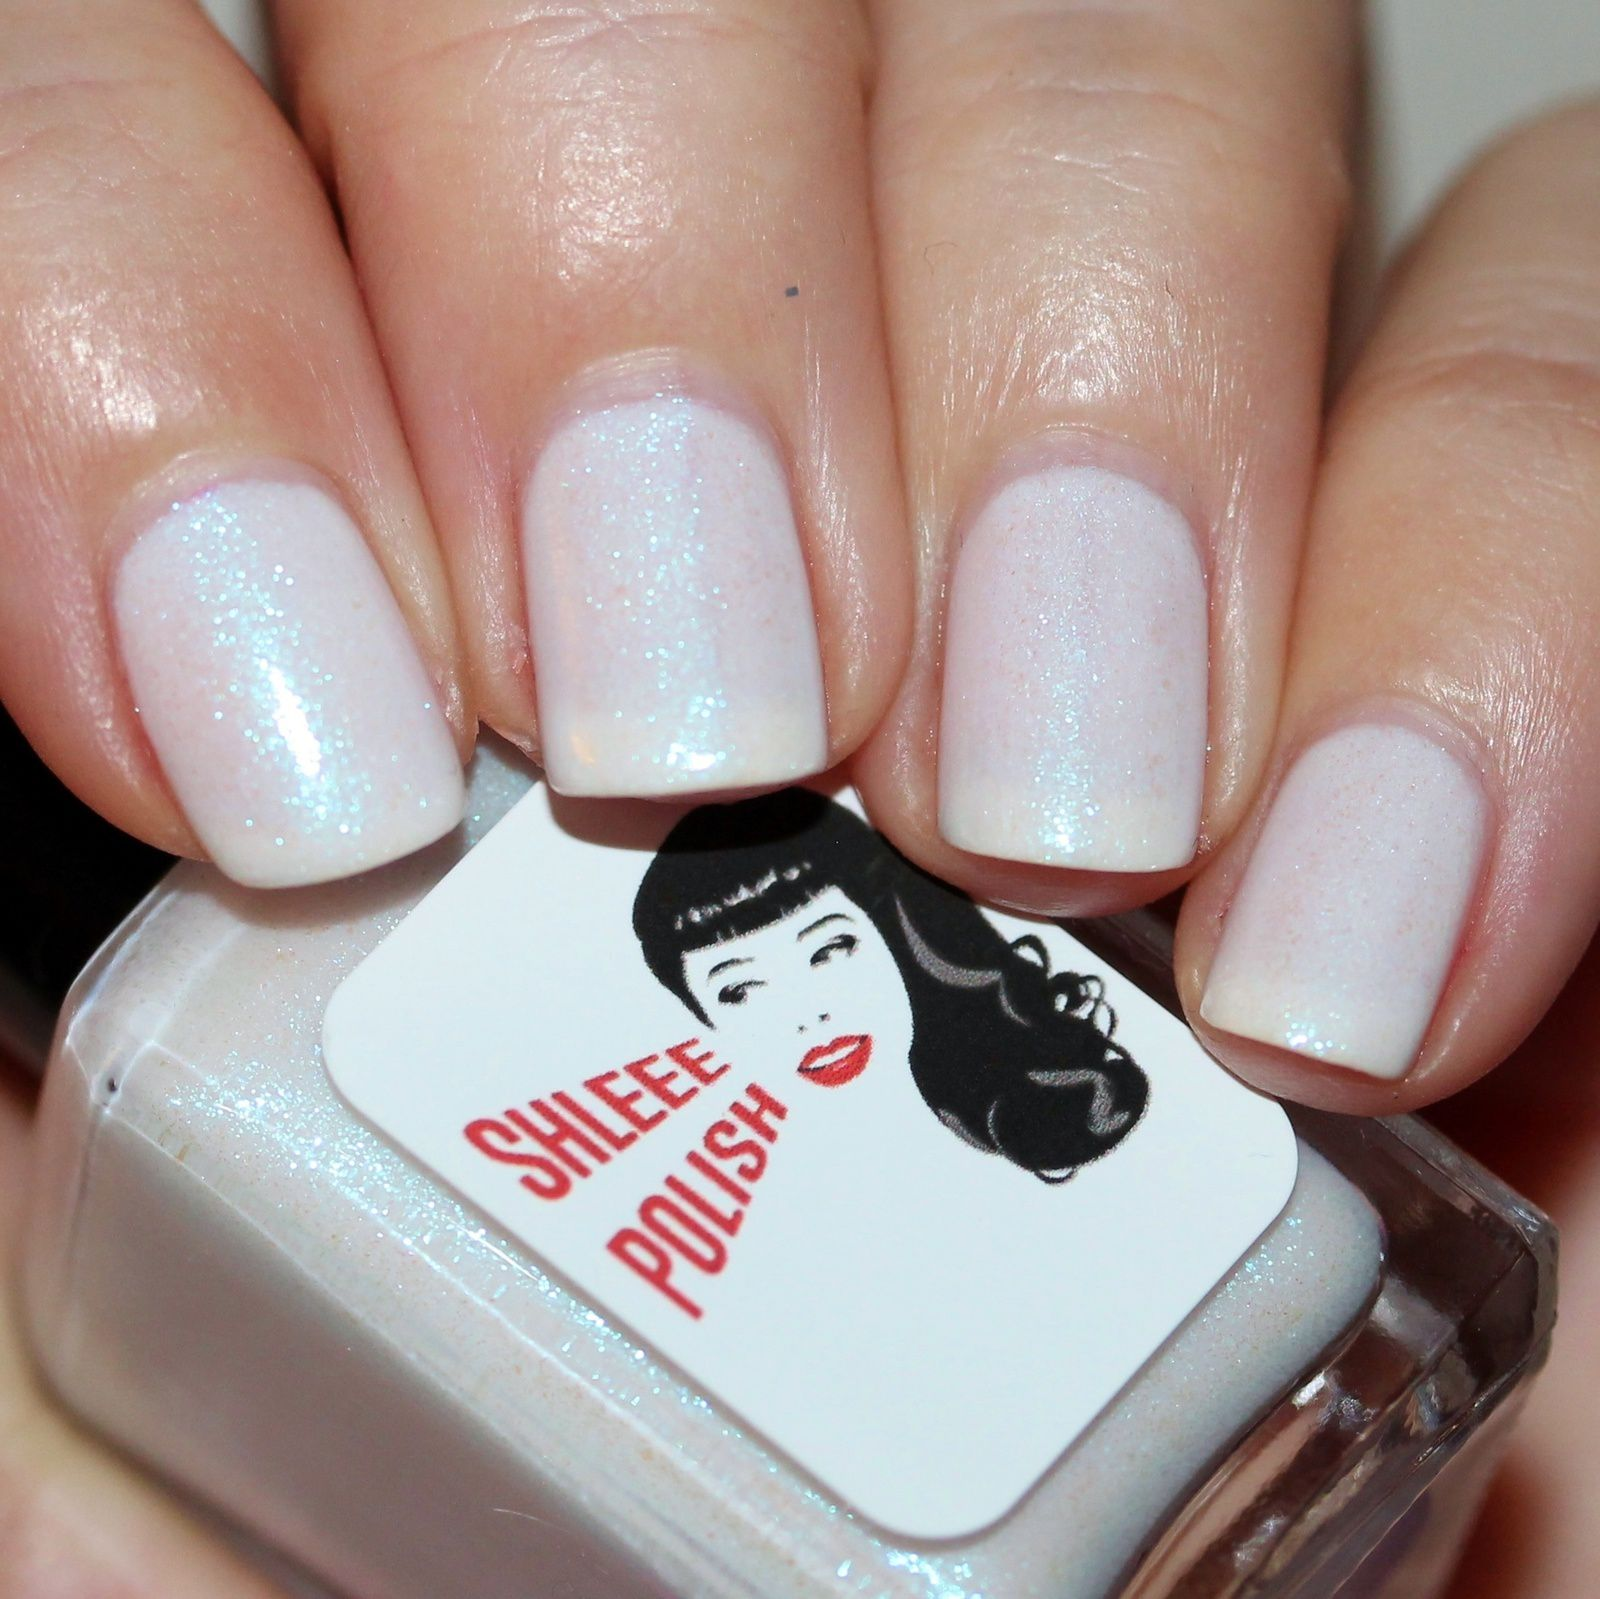 Sally Hansen Complete Care 4-in-1 Extra Moisturizing Nail Treatment / Shleee Polish The First Snow / Native War Paints Hurry, Hurry!Top Coat